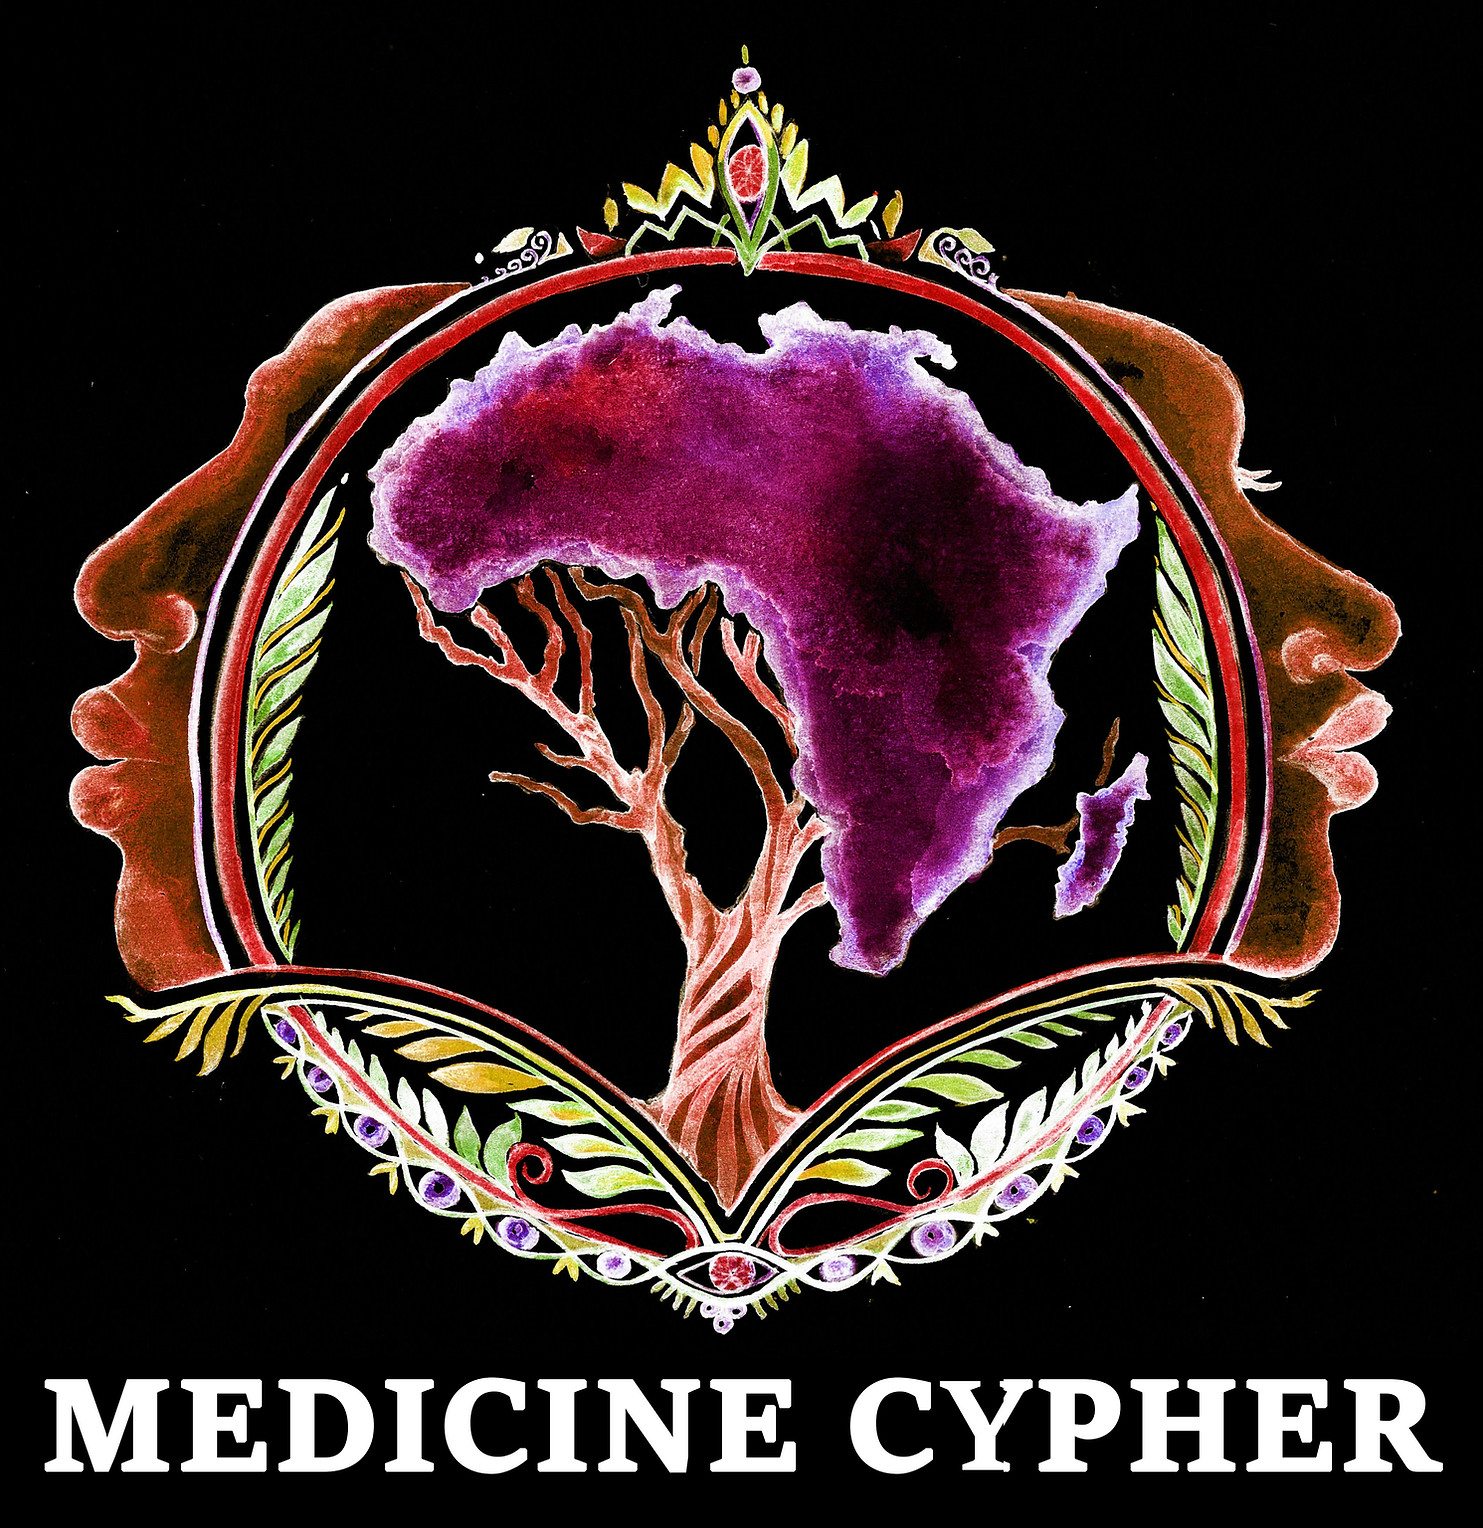 medicine cypher logo black final.jpg